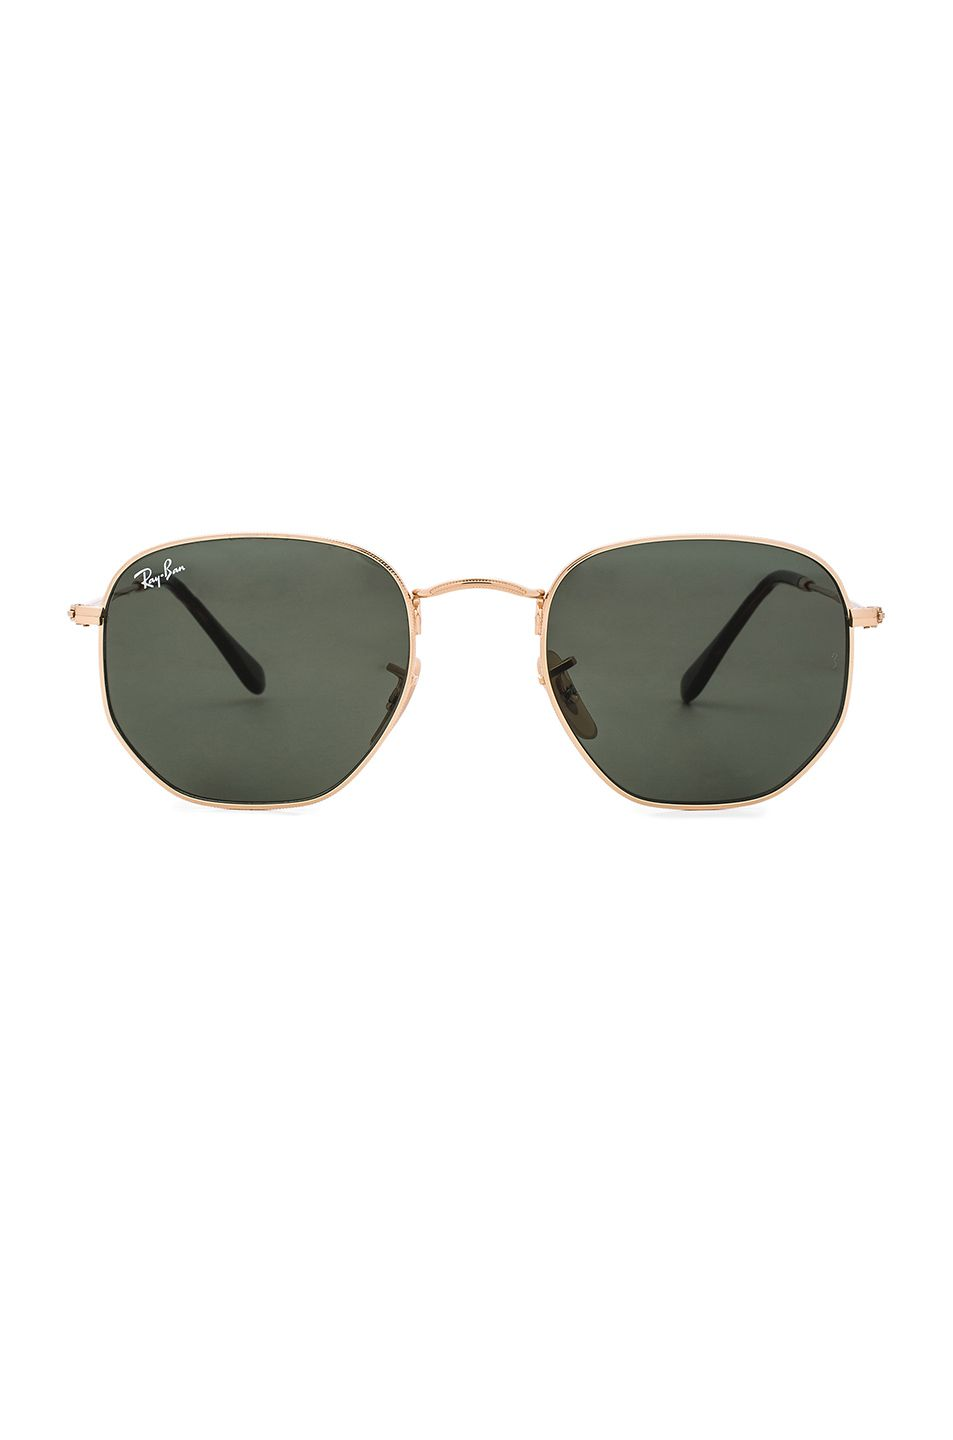 d8da2cb30bc Image 1 of Ray-Ban Hexagon Sunglasses in Gold Ray-Ban Icon Oval Flat Lens  ...